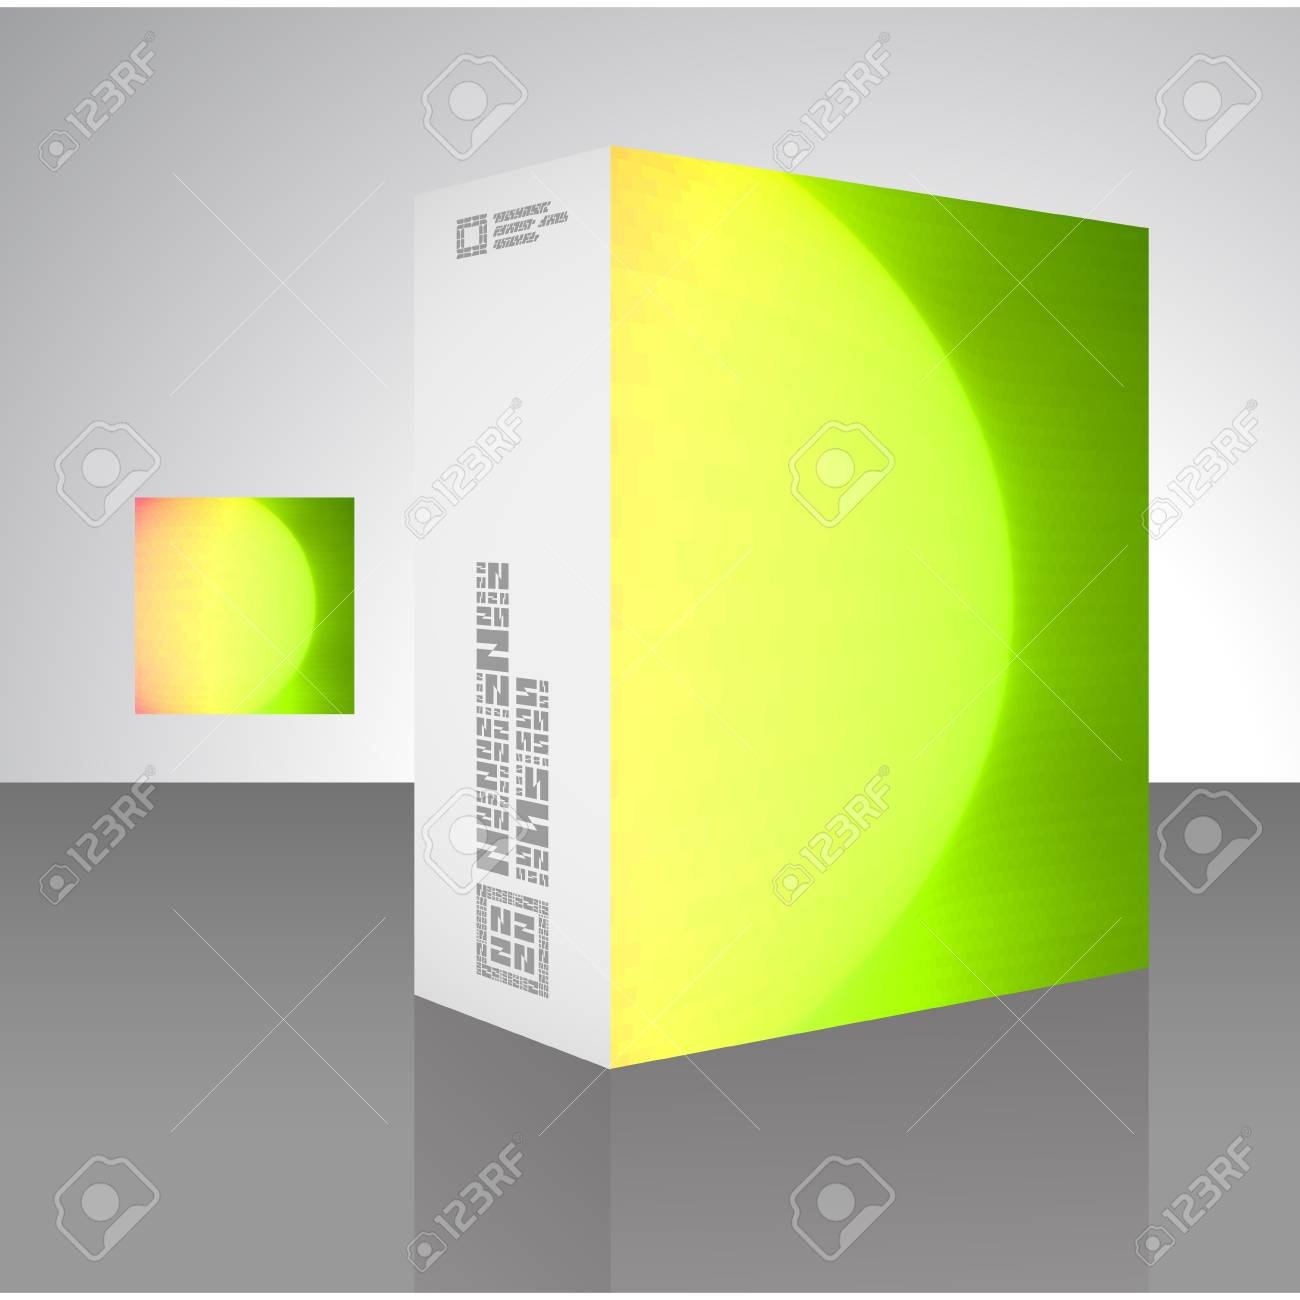 Packaging box Stock Vector - 17390621